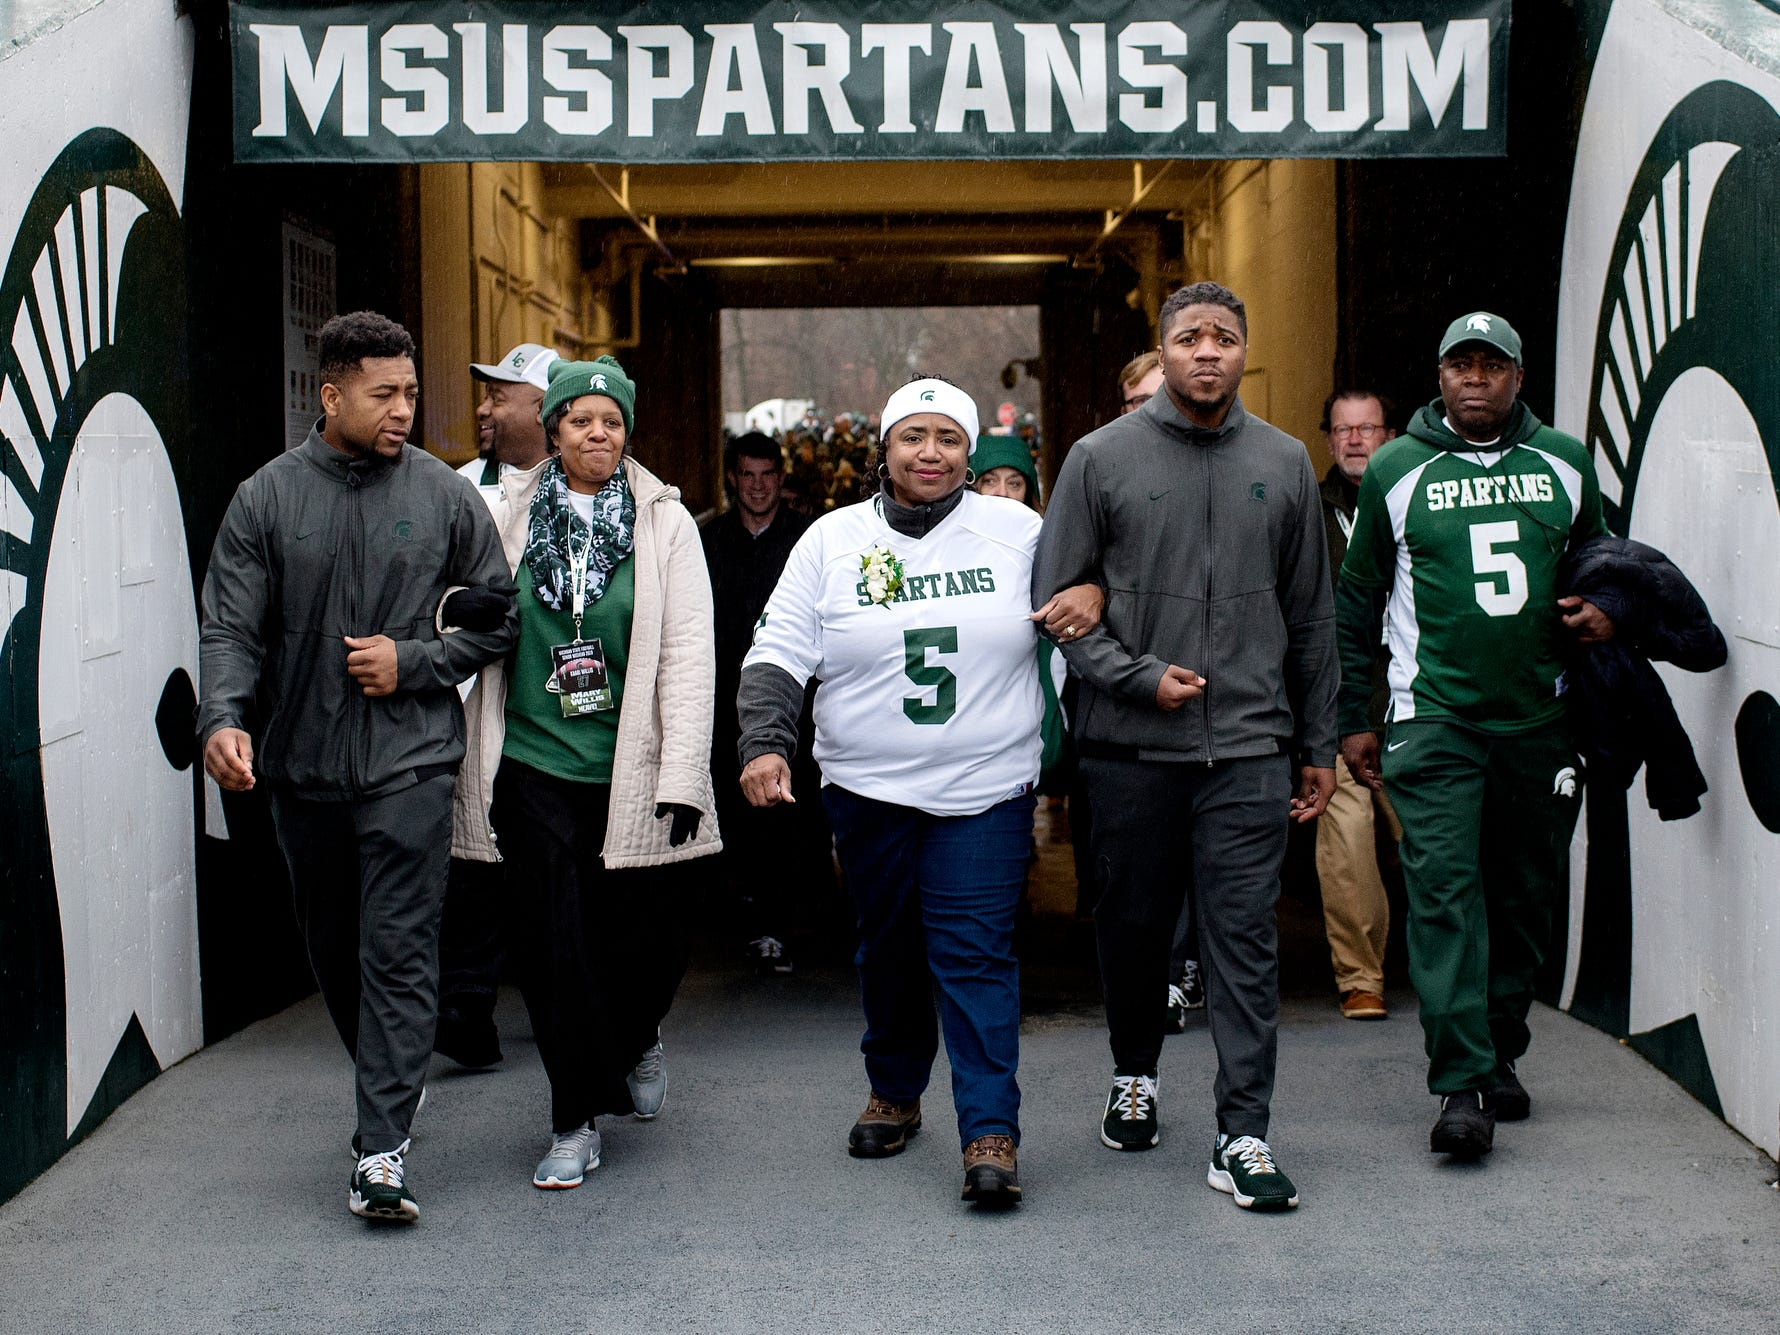 Michigan State seniors Khari Willis, left, and Andrew Dowell, right, walks into Spartan Stadium with their family before the game against Rutgers on Saturday, Nov. 24, 2018, in East Lansing.